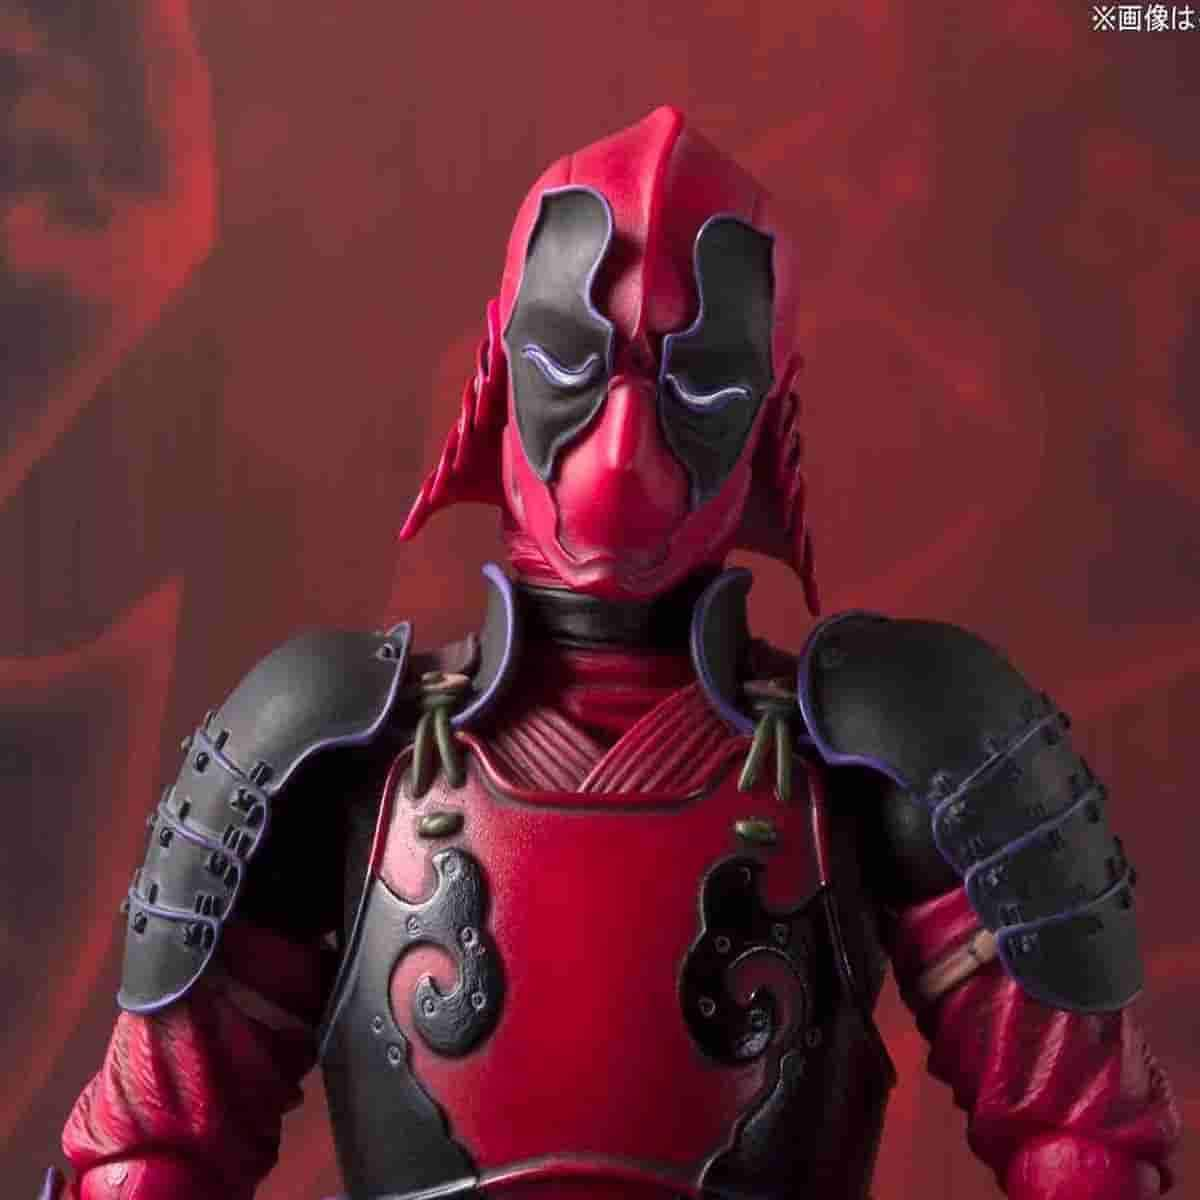 Kabukimono DeadPool Marvel Comics - Meisho Manga Realization Action Figure -Tamashii Nations by BANDAI - IamRetro.com